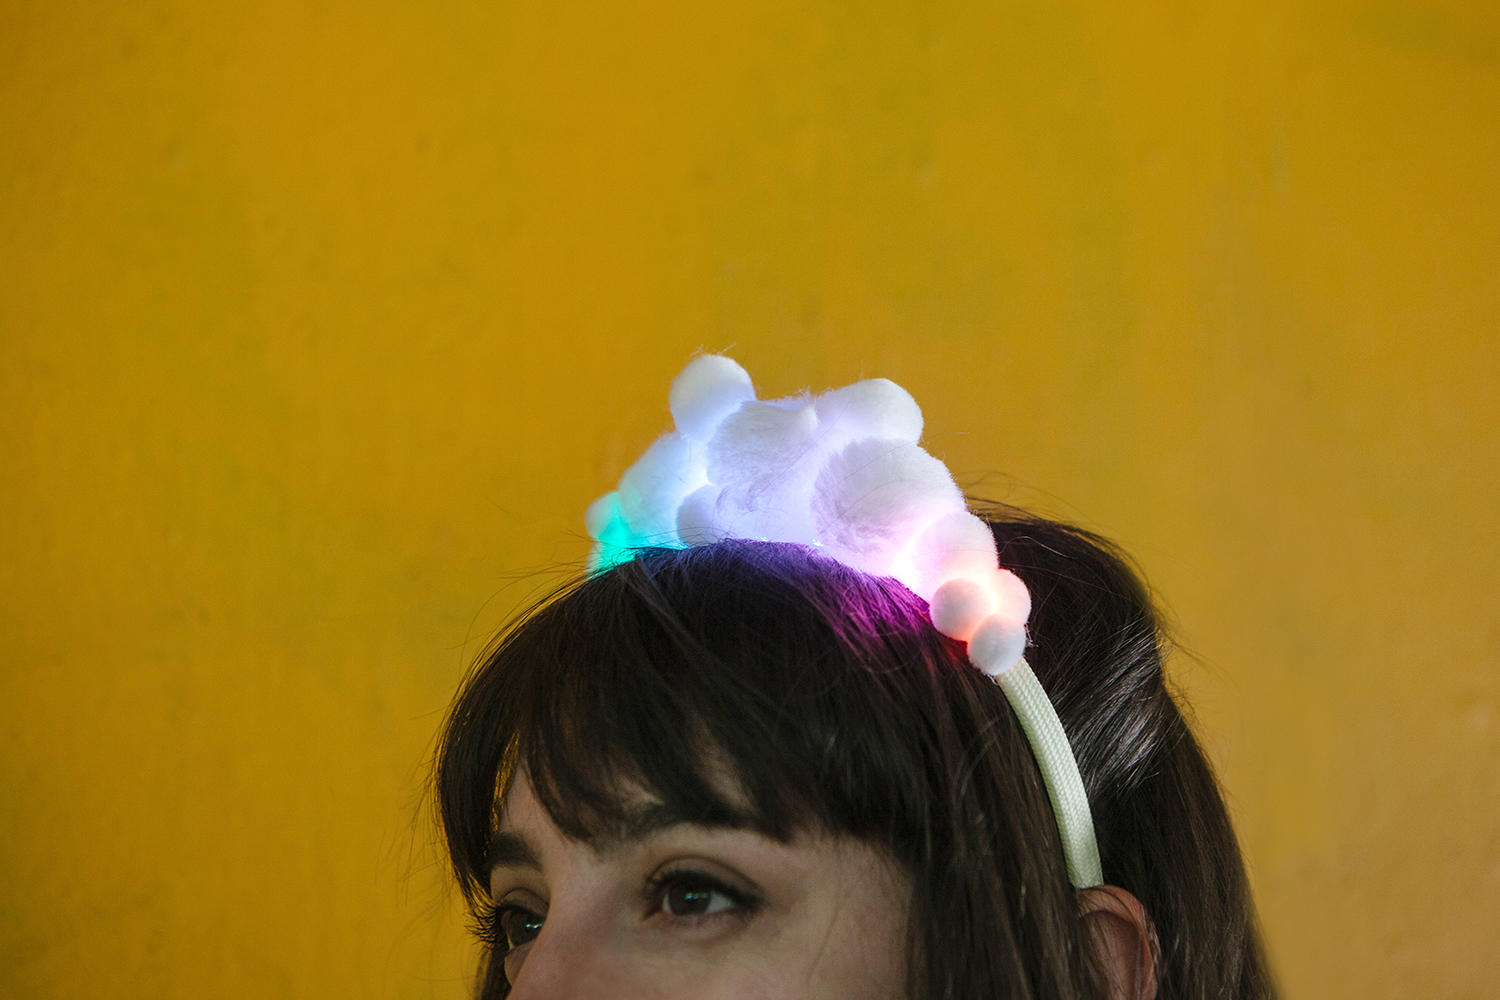 Led Pompom Headbands The Diode Or Short Lead For A As Shown In Circuit Alt Text